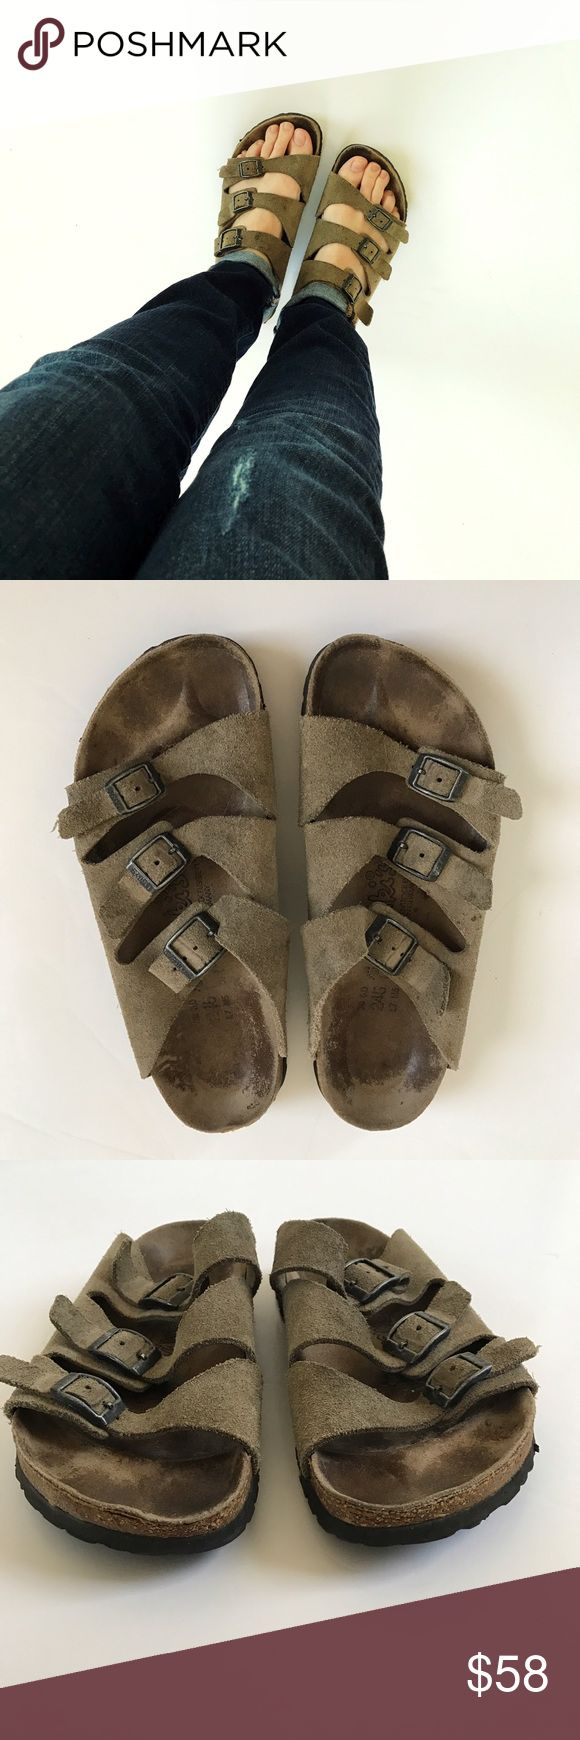 """Birkenstock 3 Strap Sandals """"Birki's"""" 3 strap slide sandals. Tan/light brown color. Size 38 L7 M5. If you're familiar with Birkenstock sizing you know they run big. I normally wear 7.5 or 8 and these fit. See photos for marks of wear on footbed, curling on one heel, pic 7 shows some stains on the inside part of sandal that aren't very noticeable when wearing. These have alot of wear but last a long time so there is still plenty of life left in them. I understand the condition isn't perfect…"""